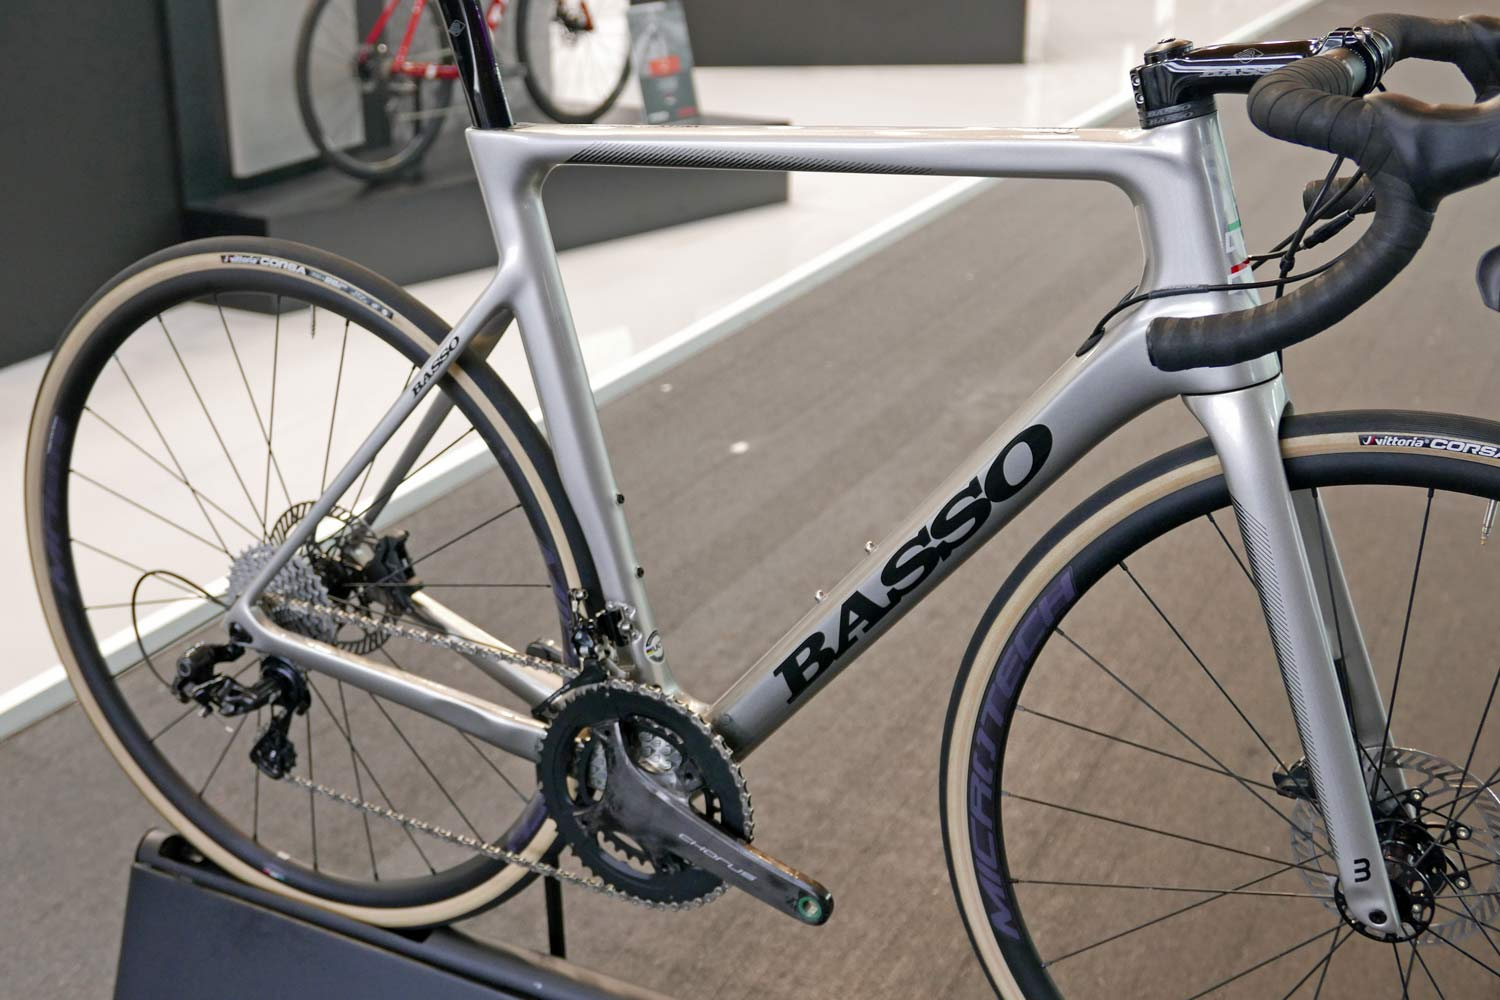 2020 Basso Astra Disc road bike, Italian carbon all-rounder road race bike